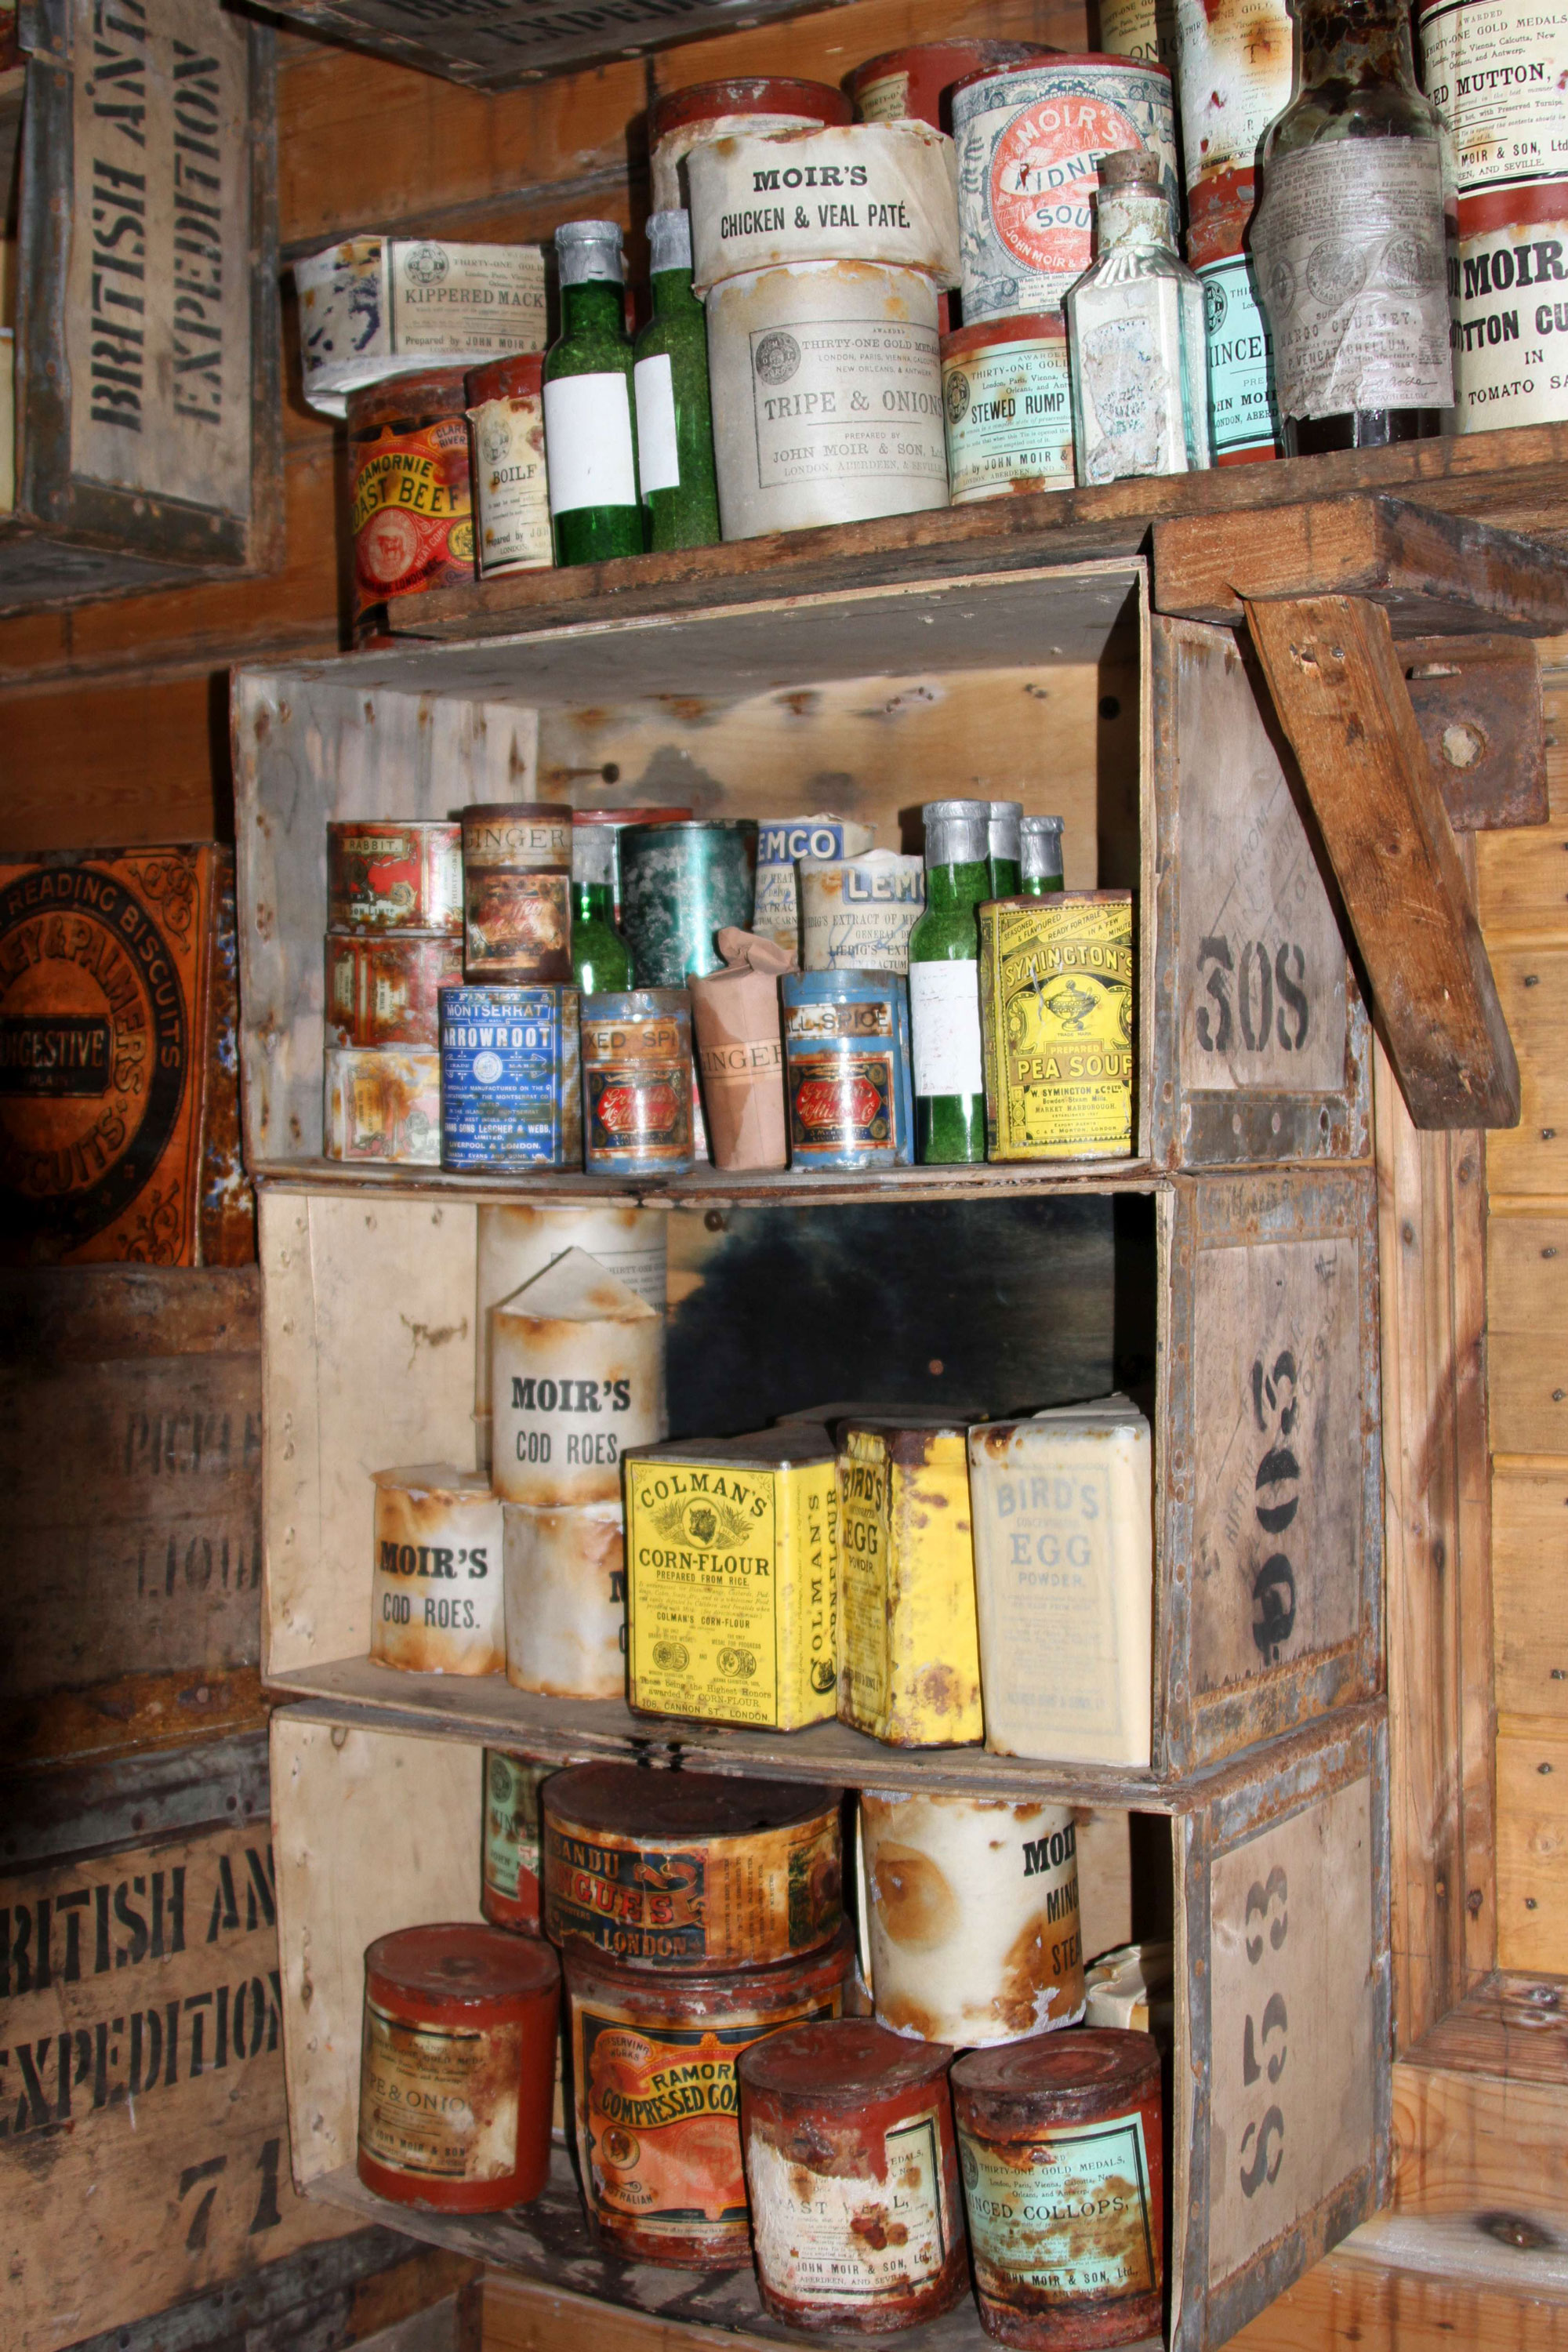 An assortment of provisions inside Shackleton's hut.  The shelves are made from packing crates for his 1907 expedition.